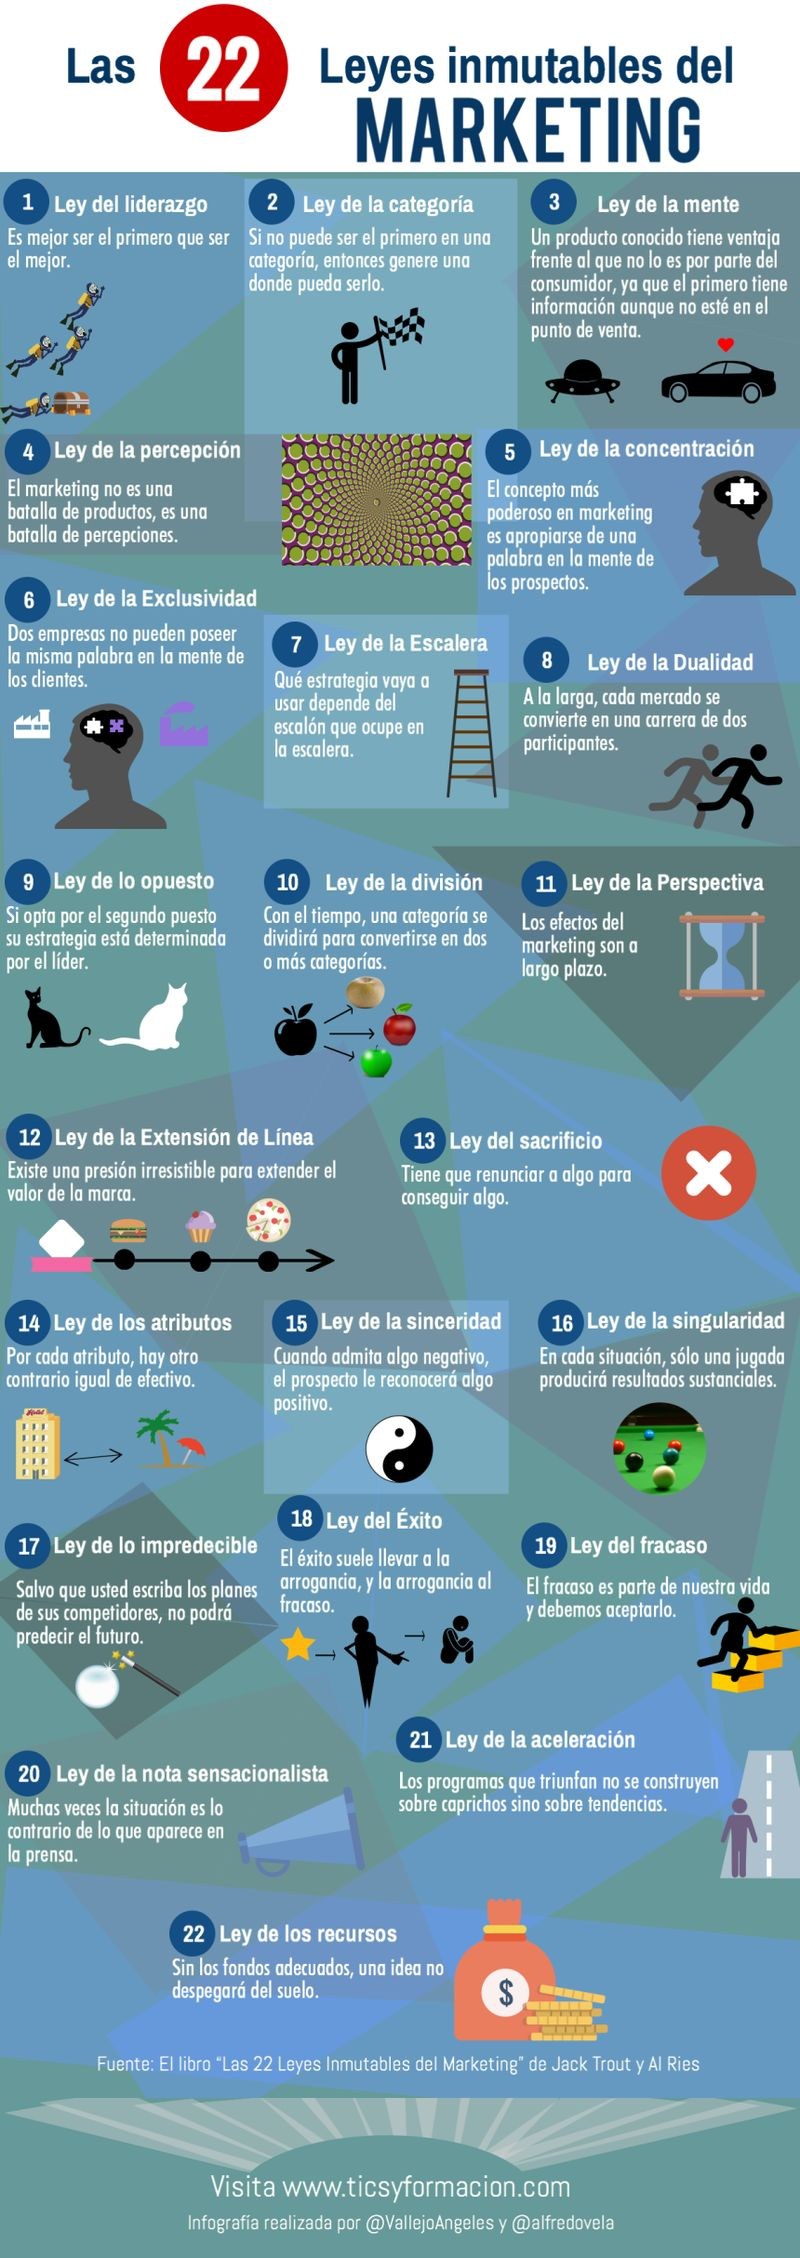 22 Leyes del Marketing Infografía 22 leyes del Marketing que nunca cambian y que debes conocer